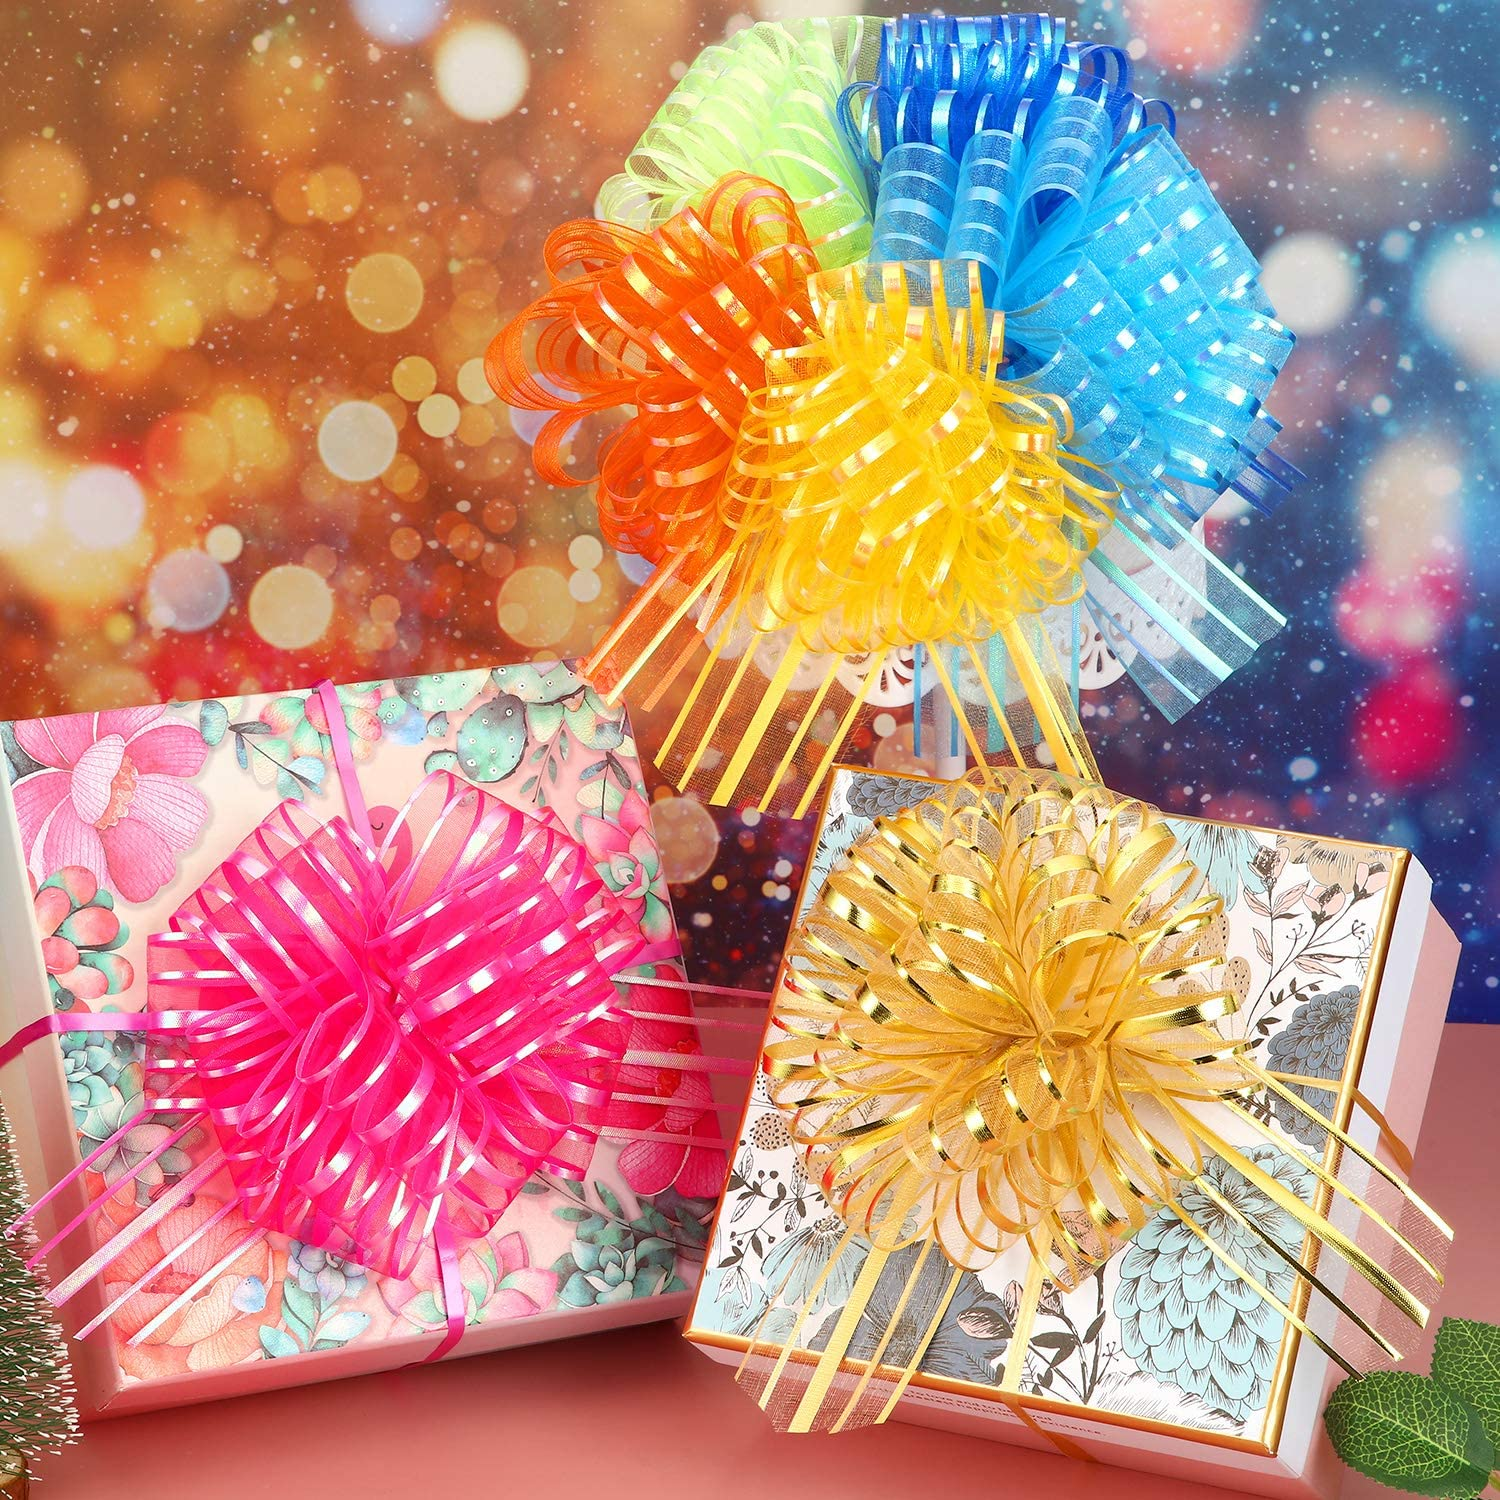 6 Inches Diameter Pull Bow Large Organza Pull Bow Gift Wrapping Pull Bow with Ribbon for Wedding Gift Baskets Mixed Color, 12 Pieces